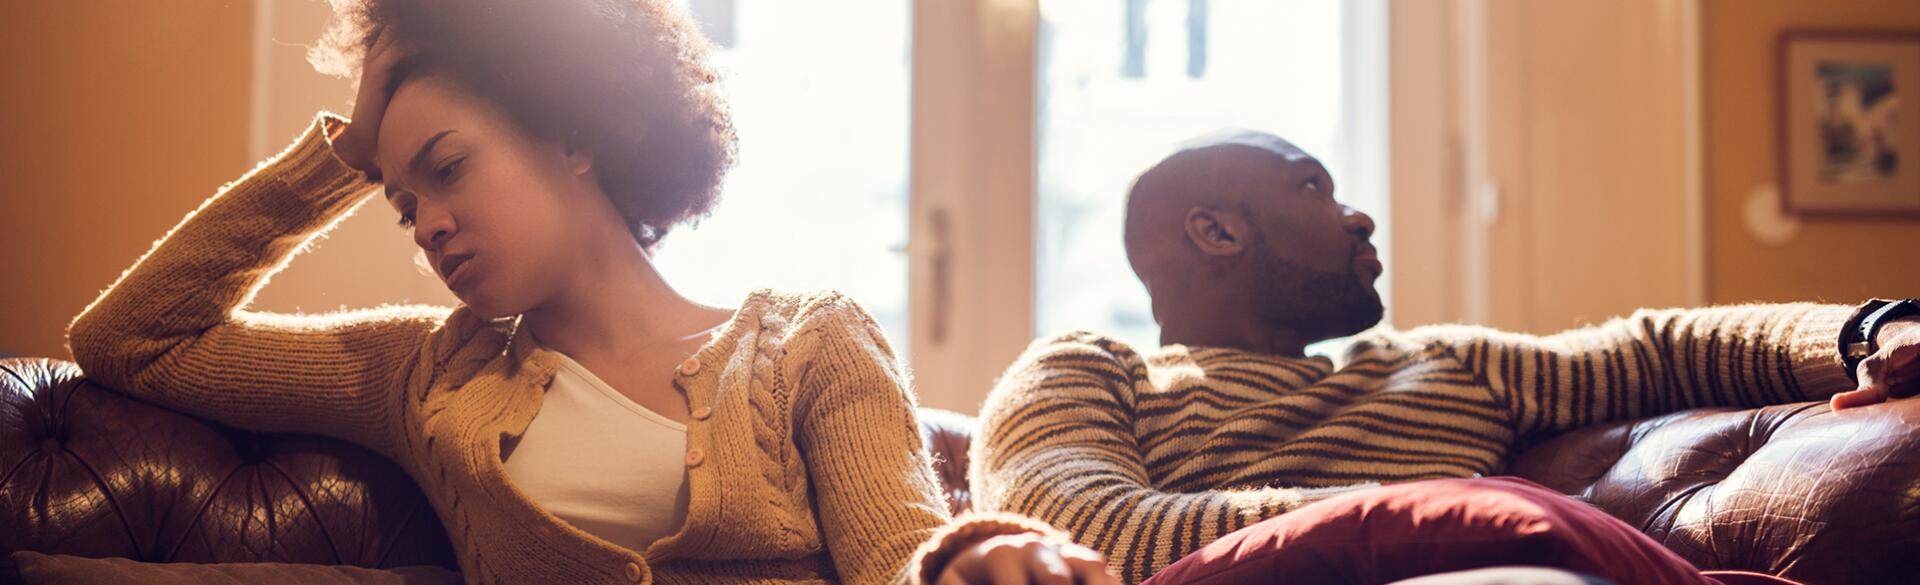 Black woman upset sitting on couch with husband after finding out he was cheating on her.